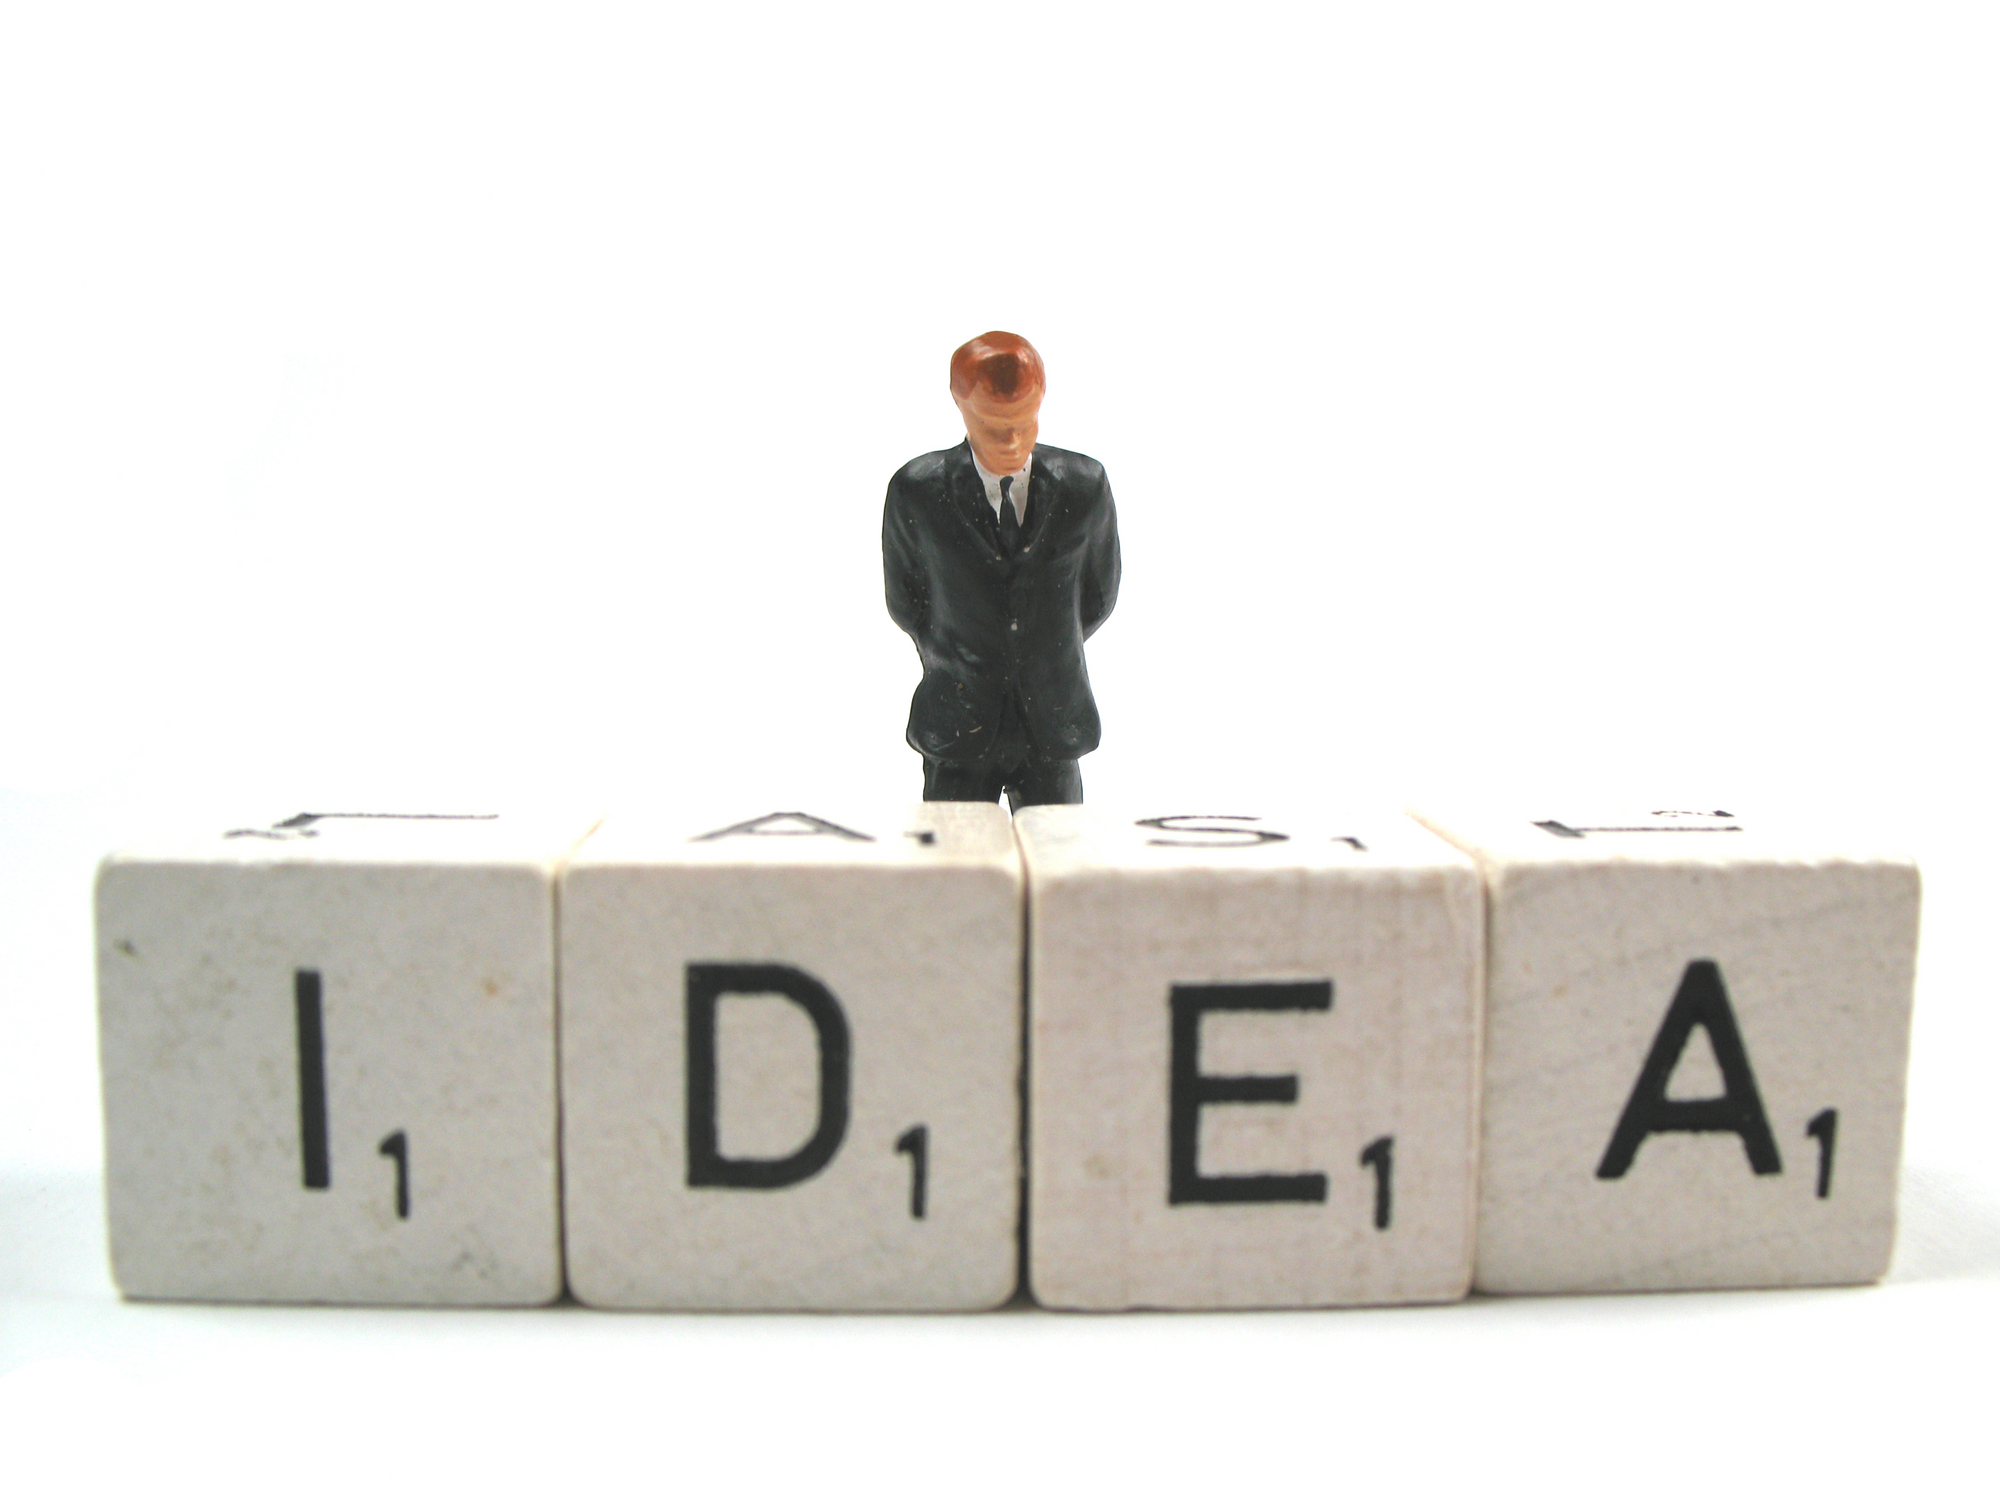 7 ways to protect your brilliant new business idea